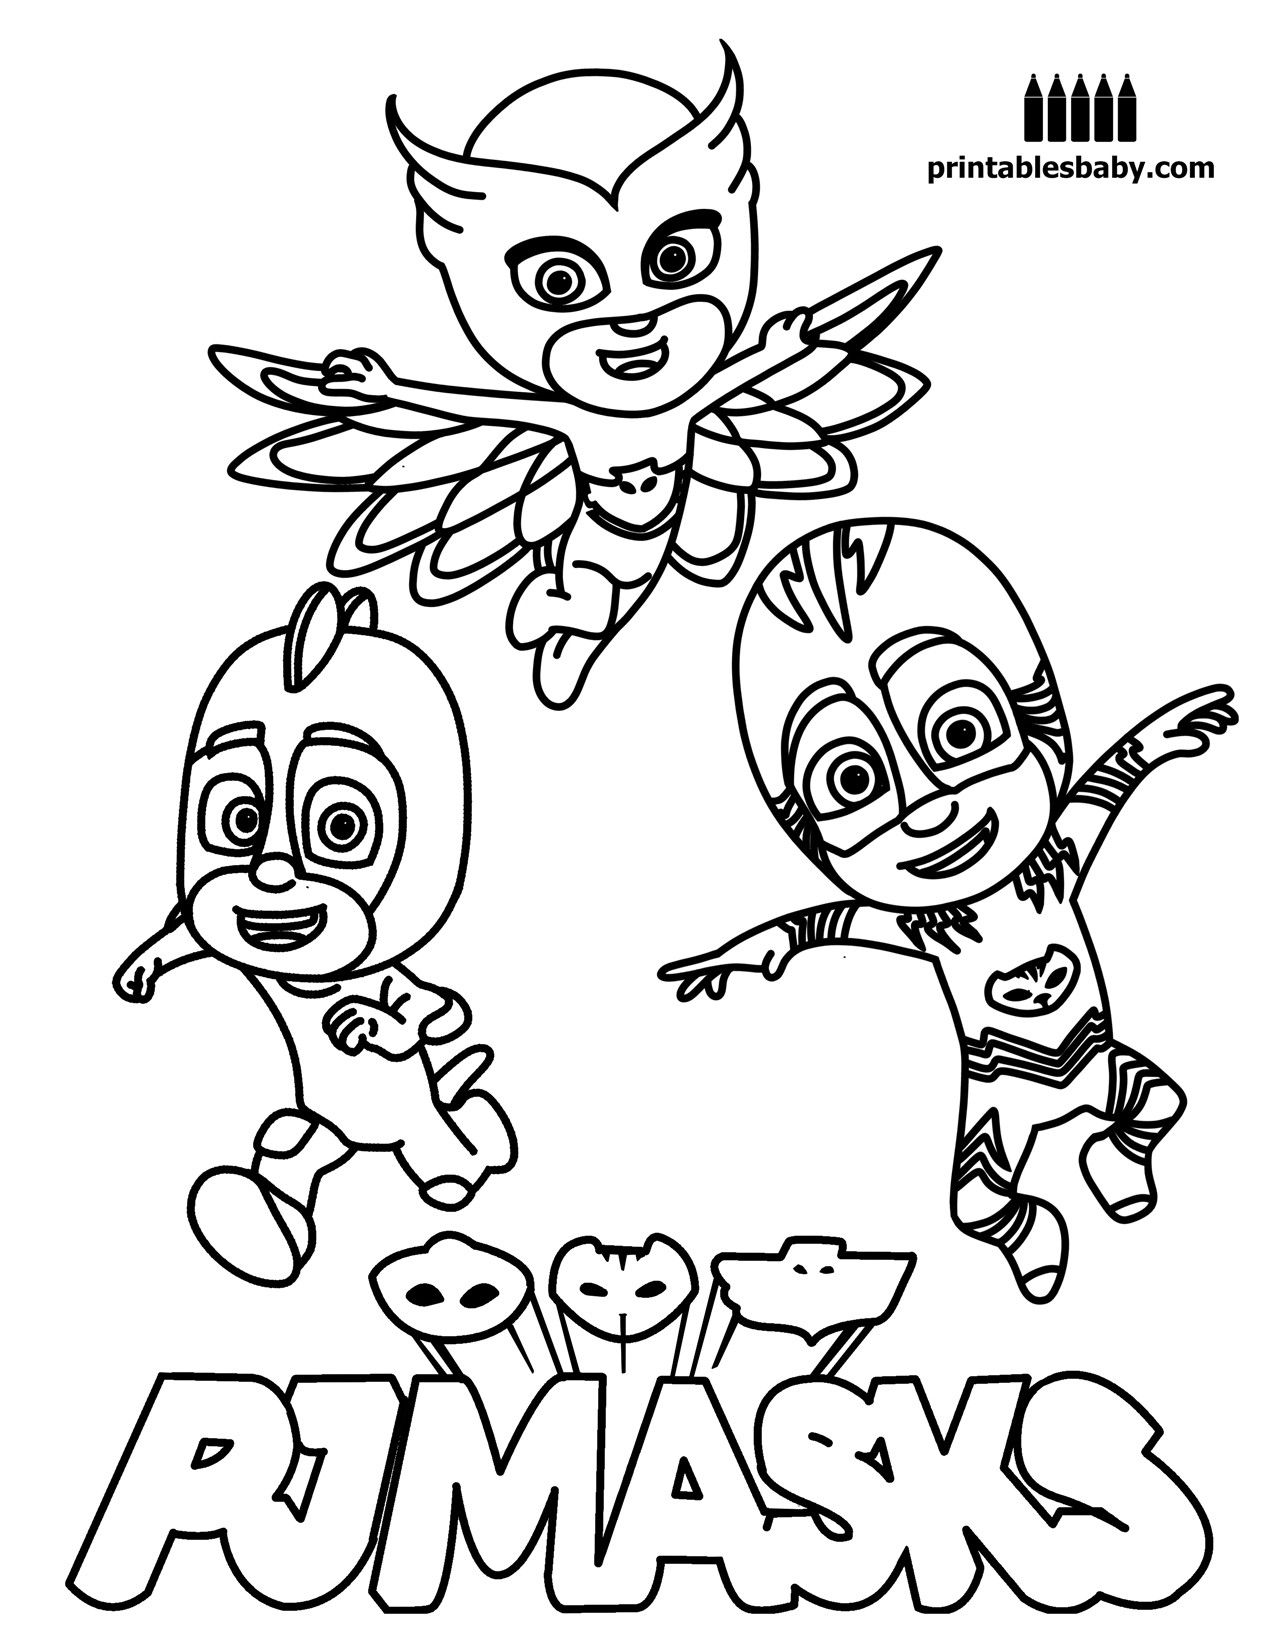 paw patrol mask coloring pages coloring paw patrol masks sketch coloring page coloring paw patrol mask pages